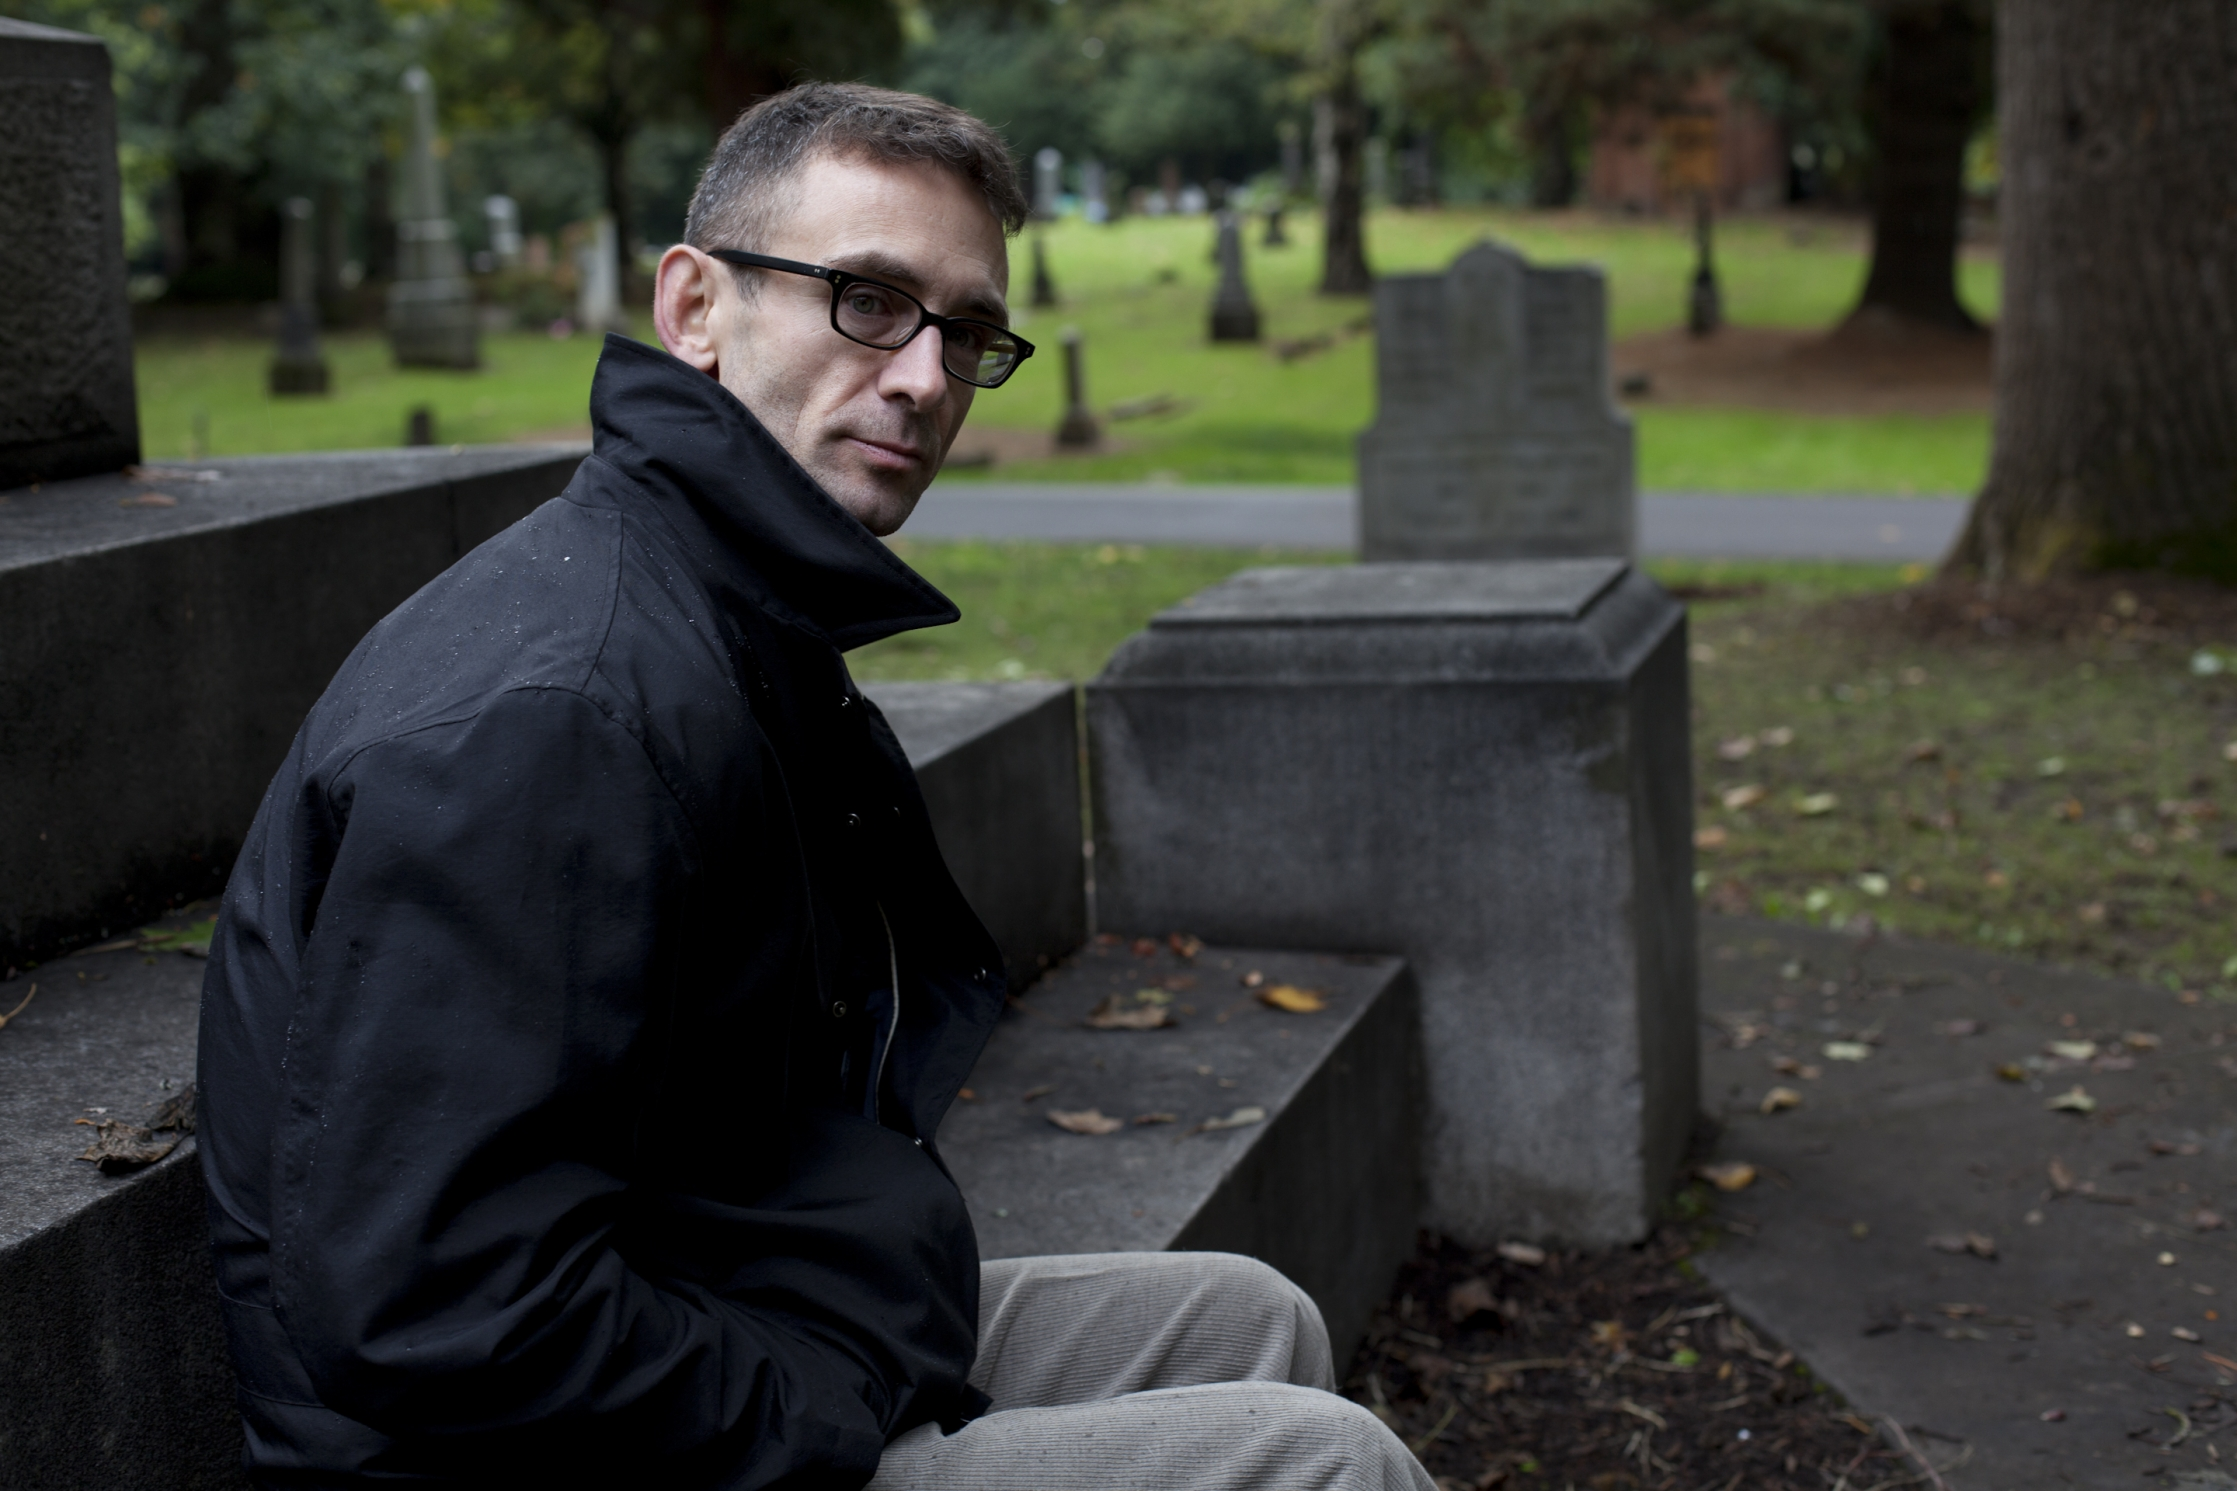 Chuck Palahniuk in Portland, Oregon. (cemetary is Lone Fir Cemetary) Image © Tim LaBarge